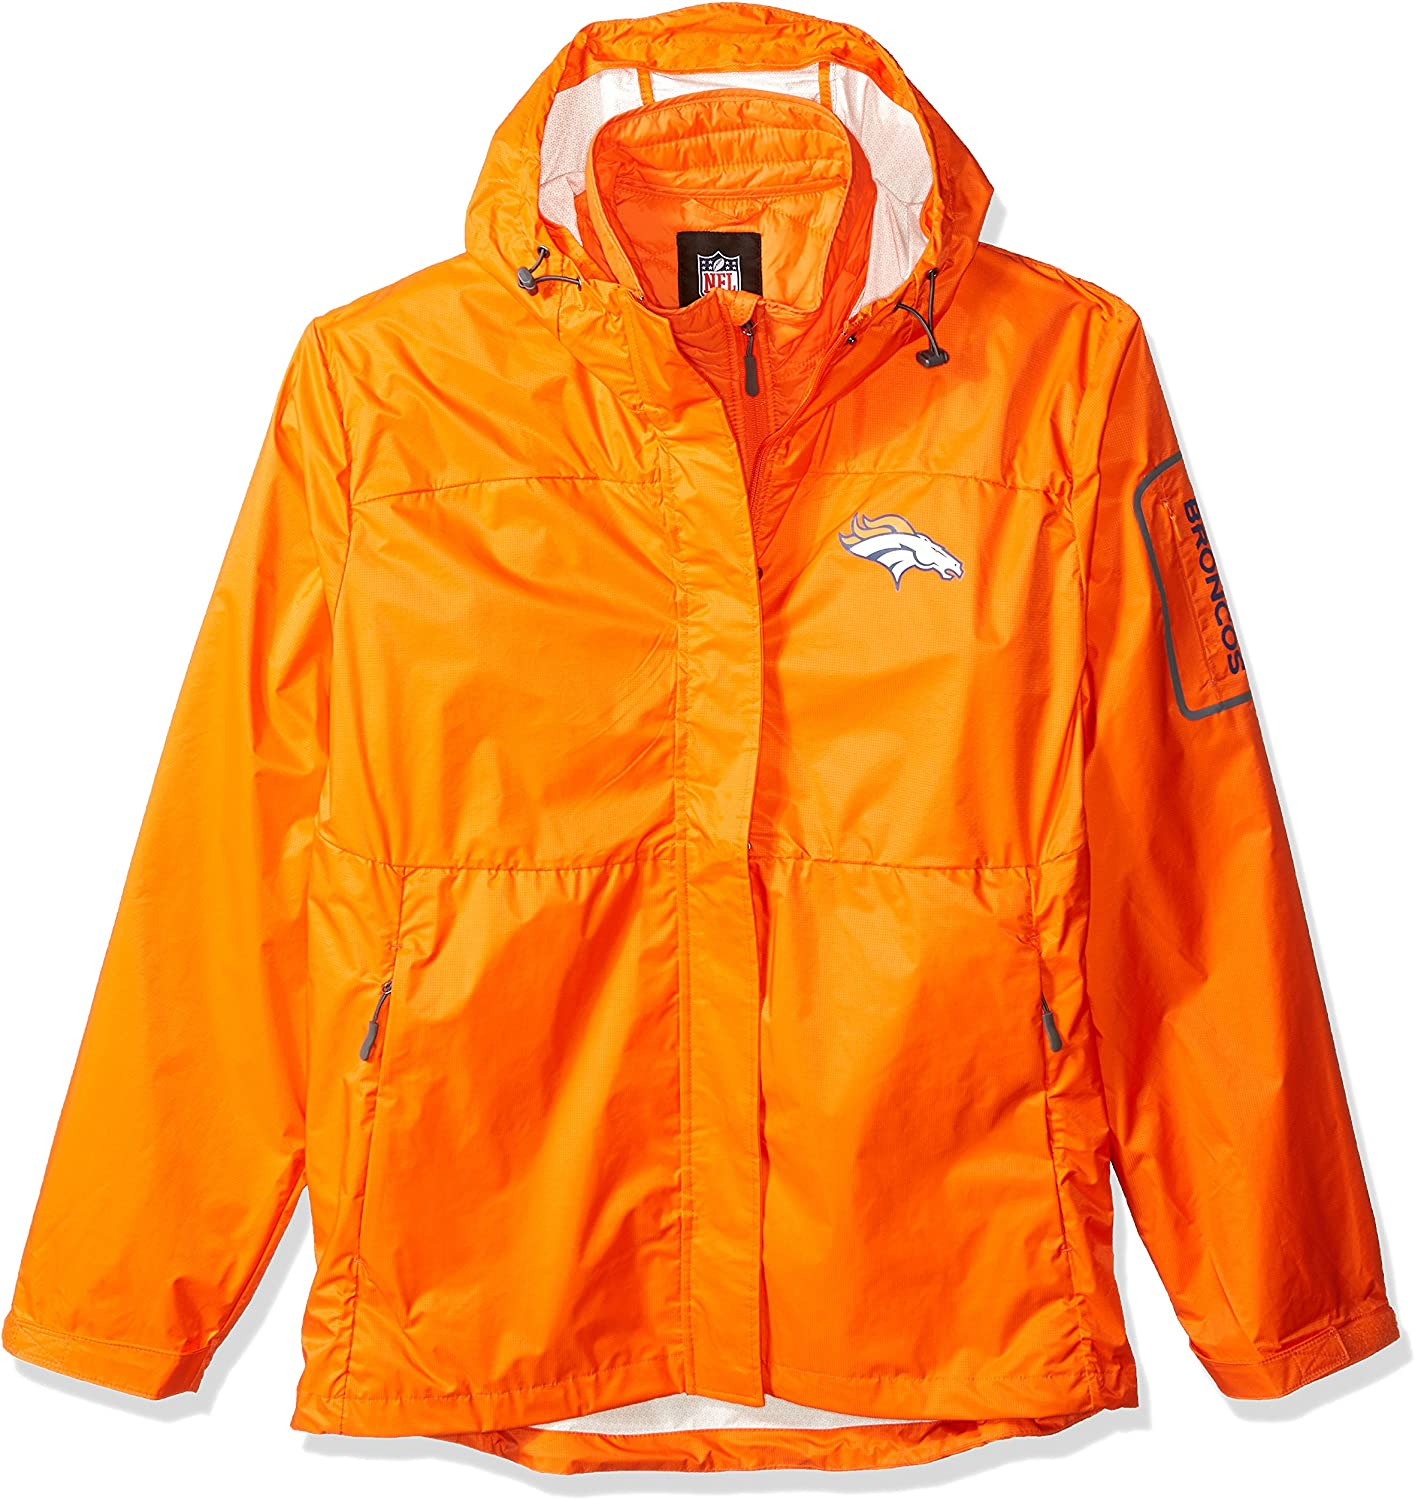 NFL Acclimation 3in1 Systems Jacket